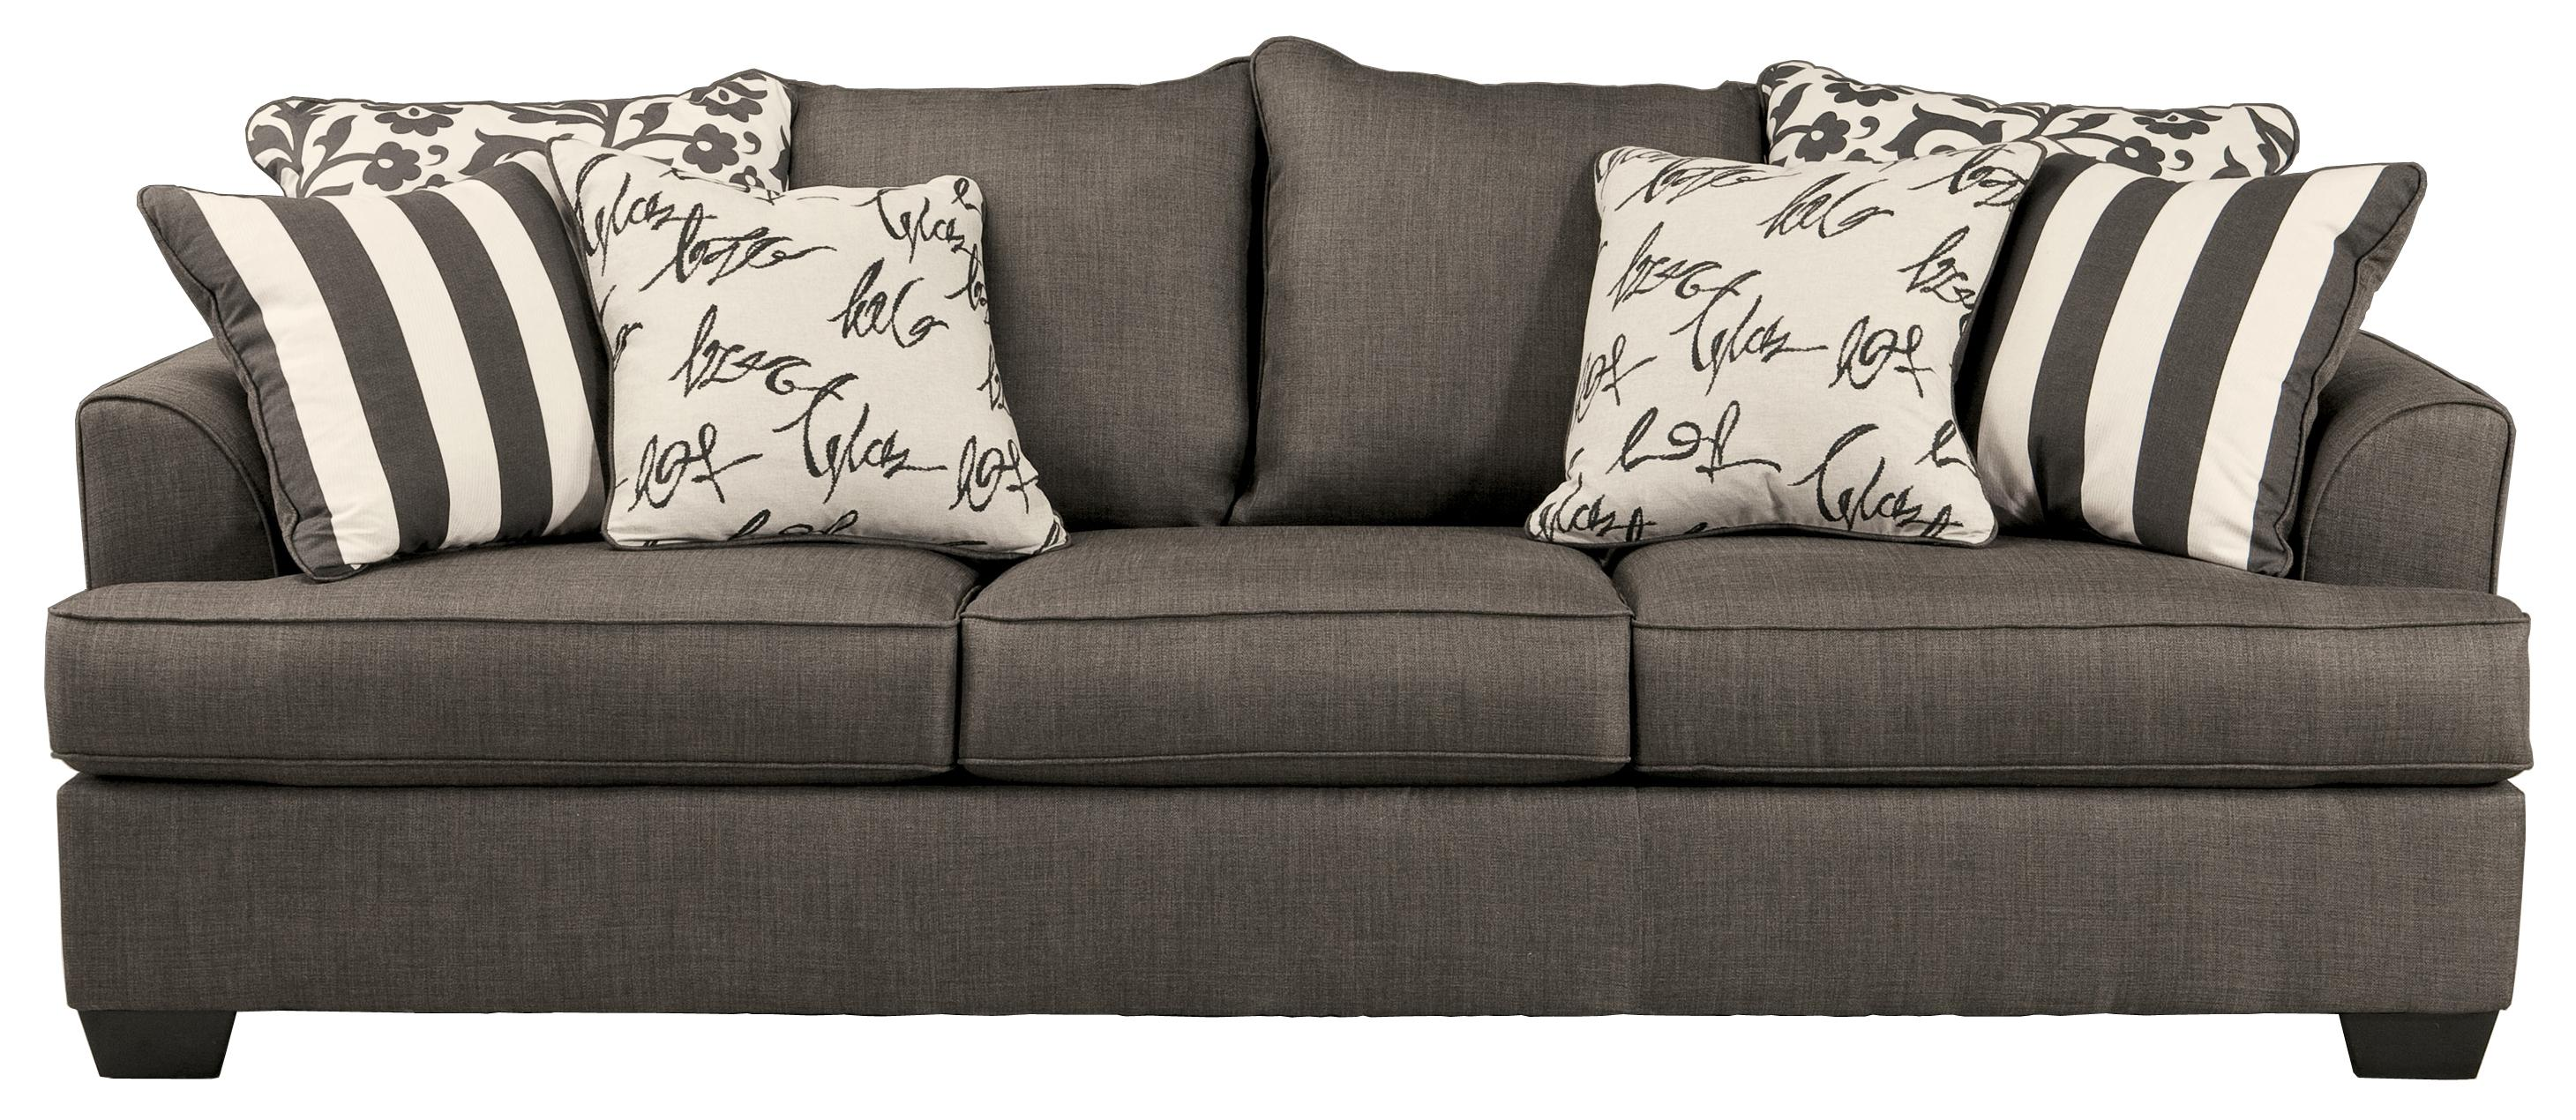 buy sofa bed new york sets for living room philippines central park queen sleeper with memory foam mattress rotmans